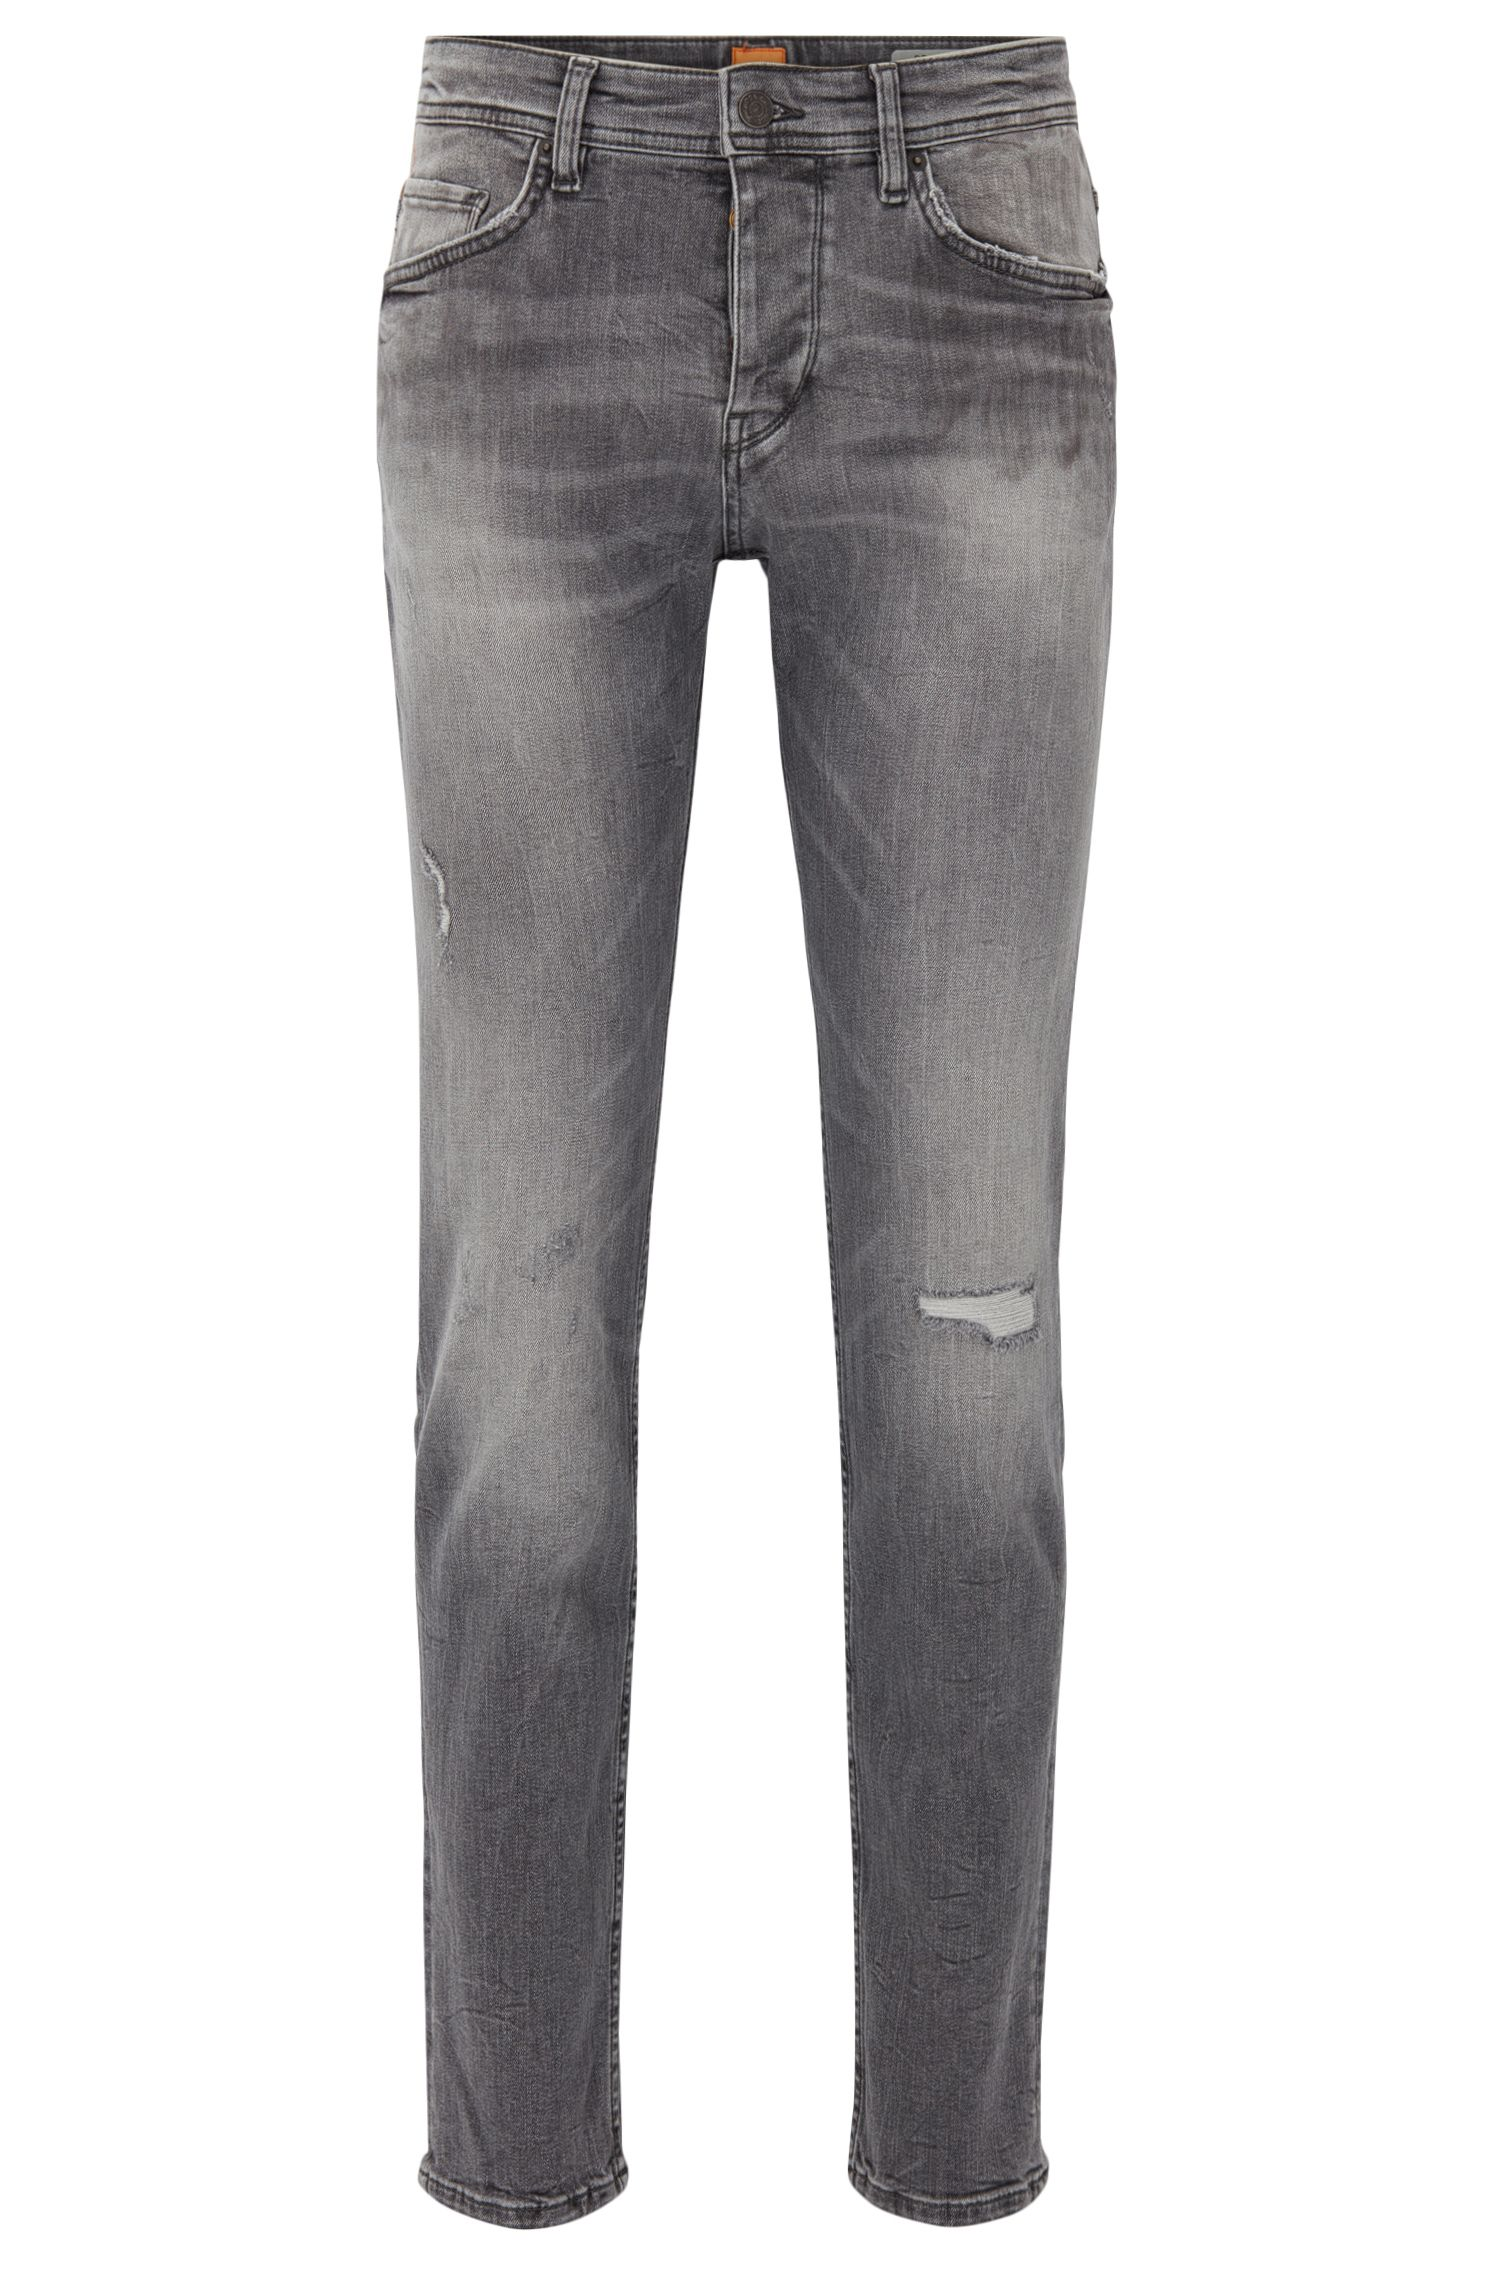 Jeans Tapered Fit noir en denim stretch recyclé